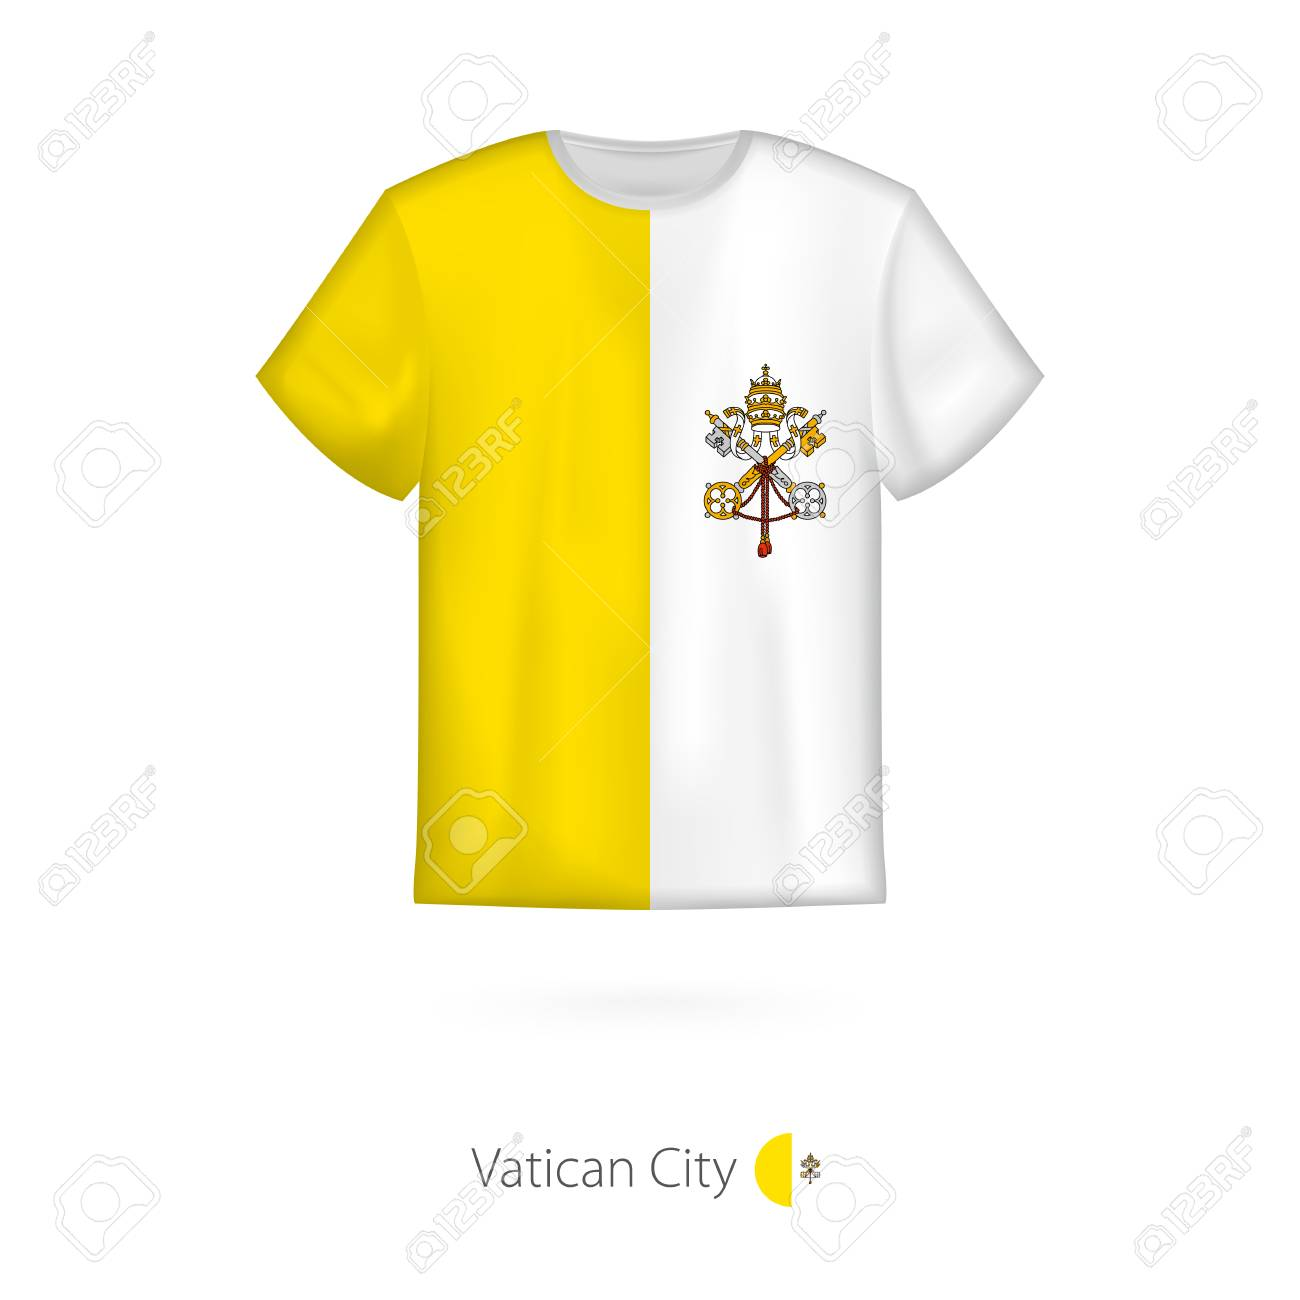 b6cb4dad8 T-shirt Design With Flag Of Vatican City. T-shirt Vector Template ...